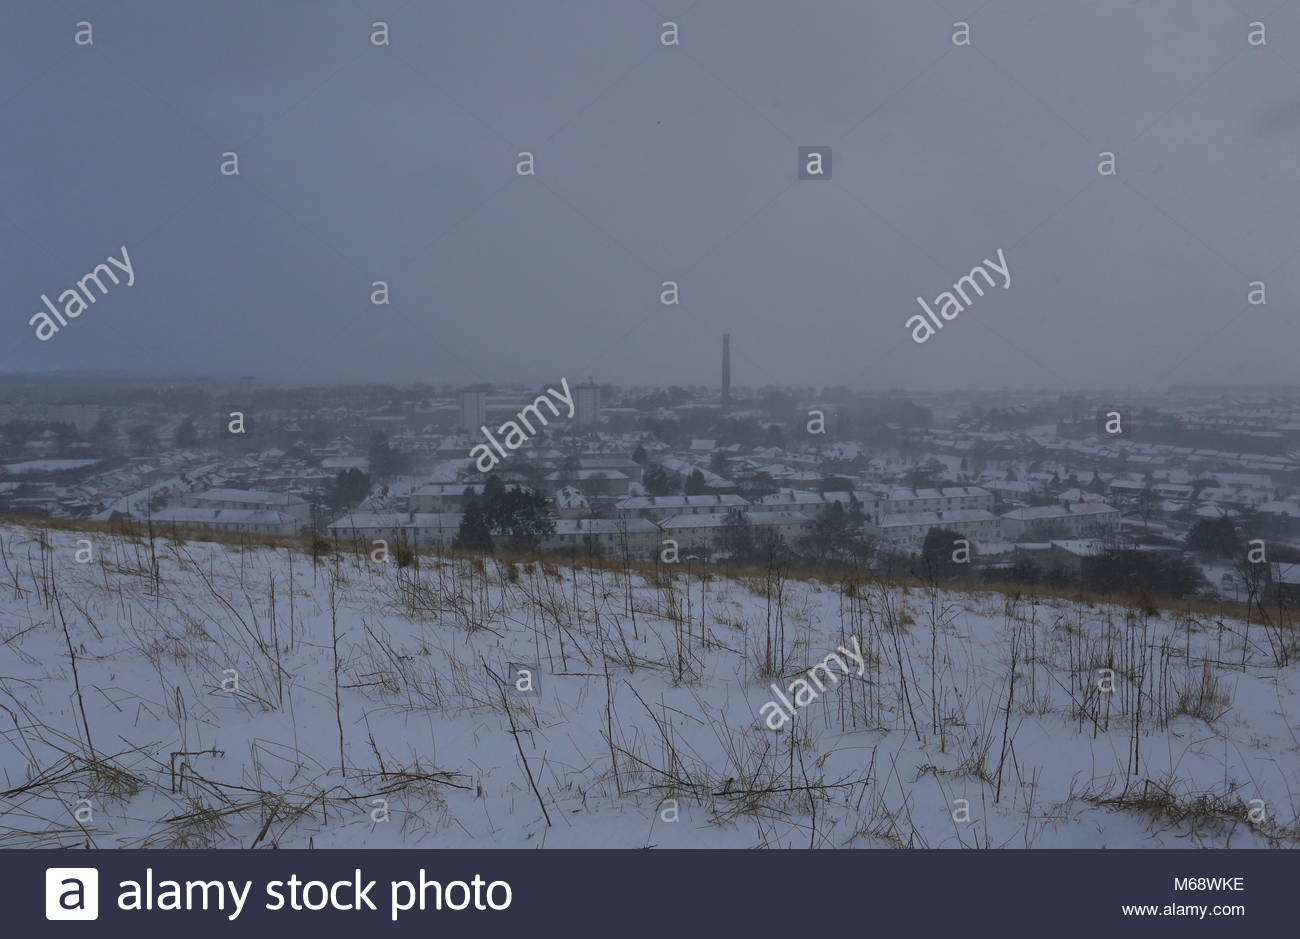 Elevated view of Lochee in winter Dundee Scotland  March 2018 - Stock Image